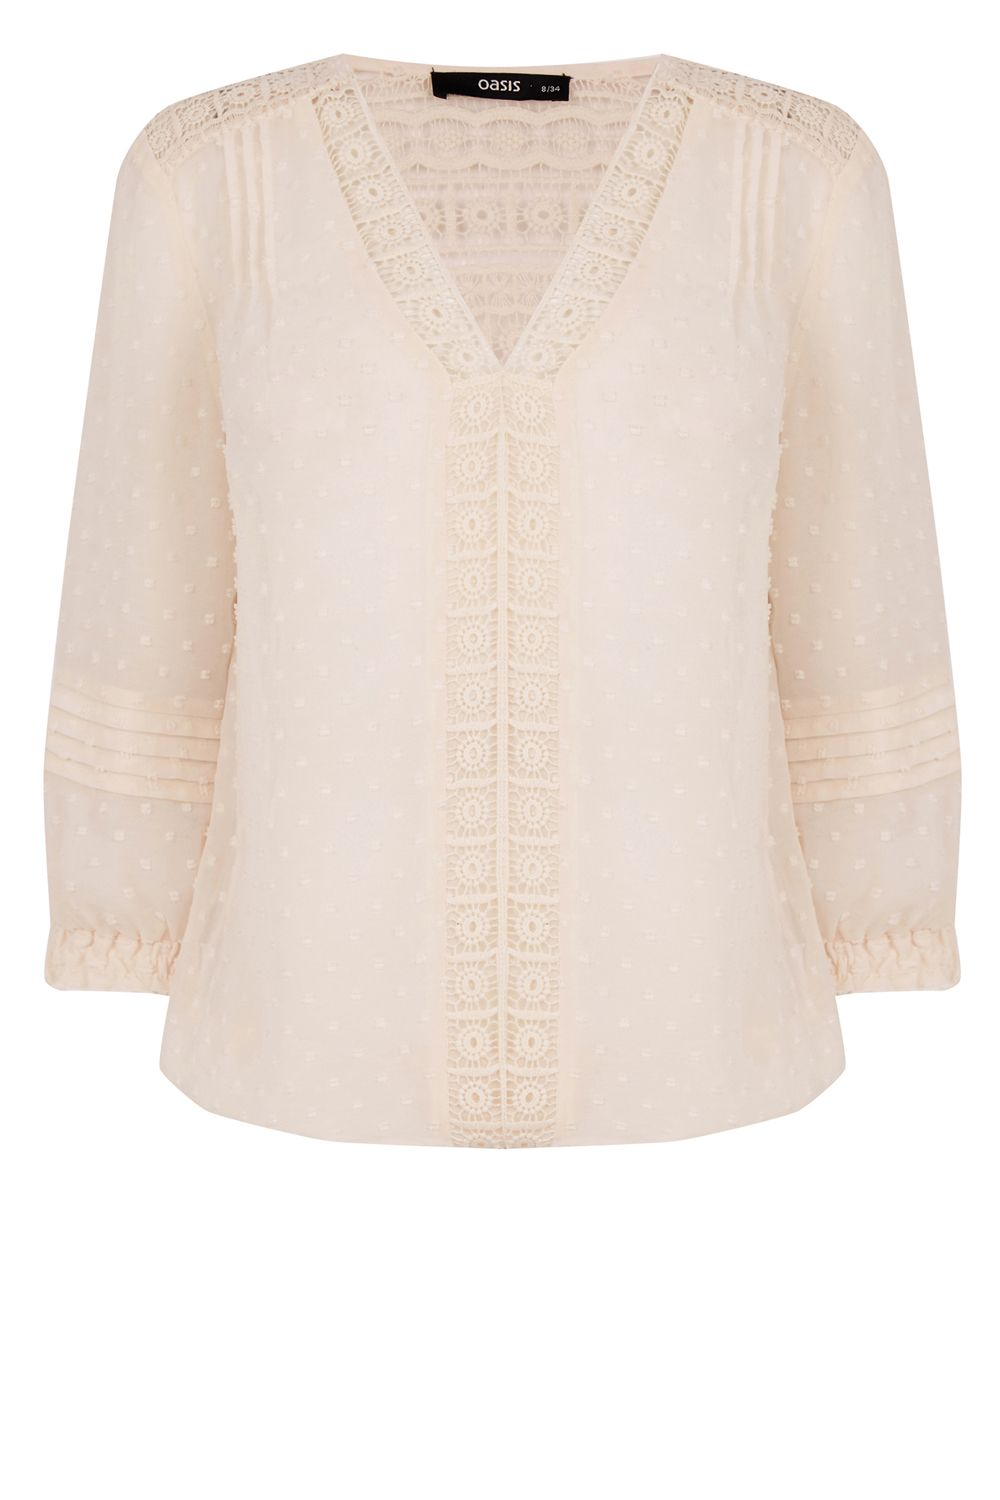 Oasis Dobby Lace Trim V Neck Blouse £12.00 AT vintagedancer.com